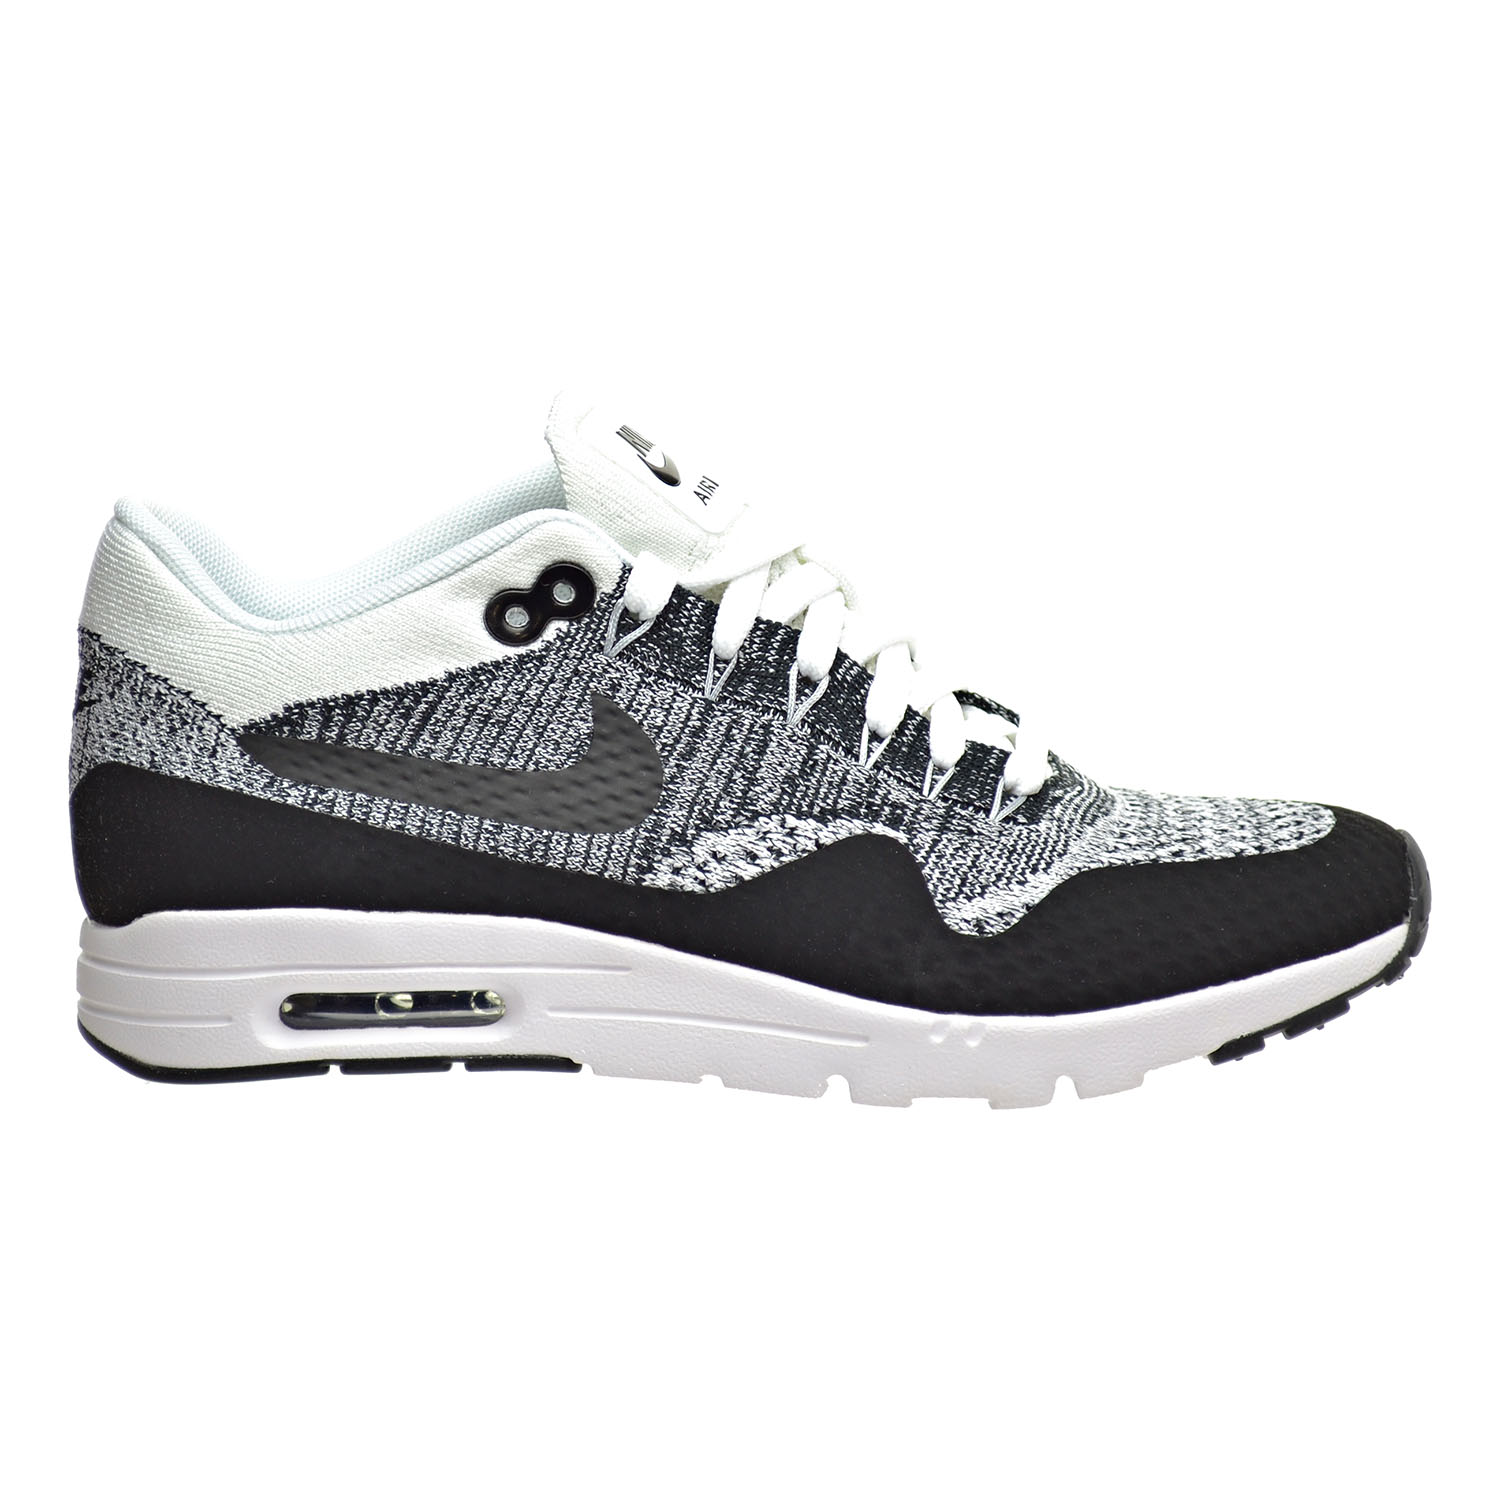 nike air max 1 ultra flyknit womens running shoes white black 843387 100